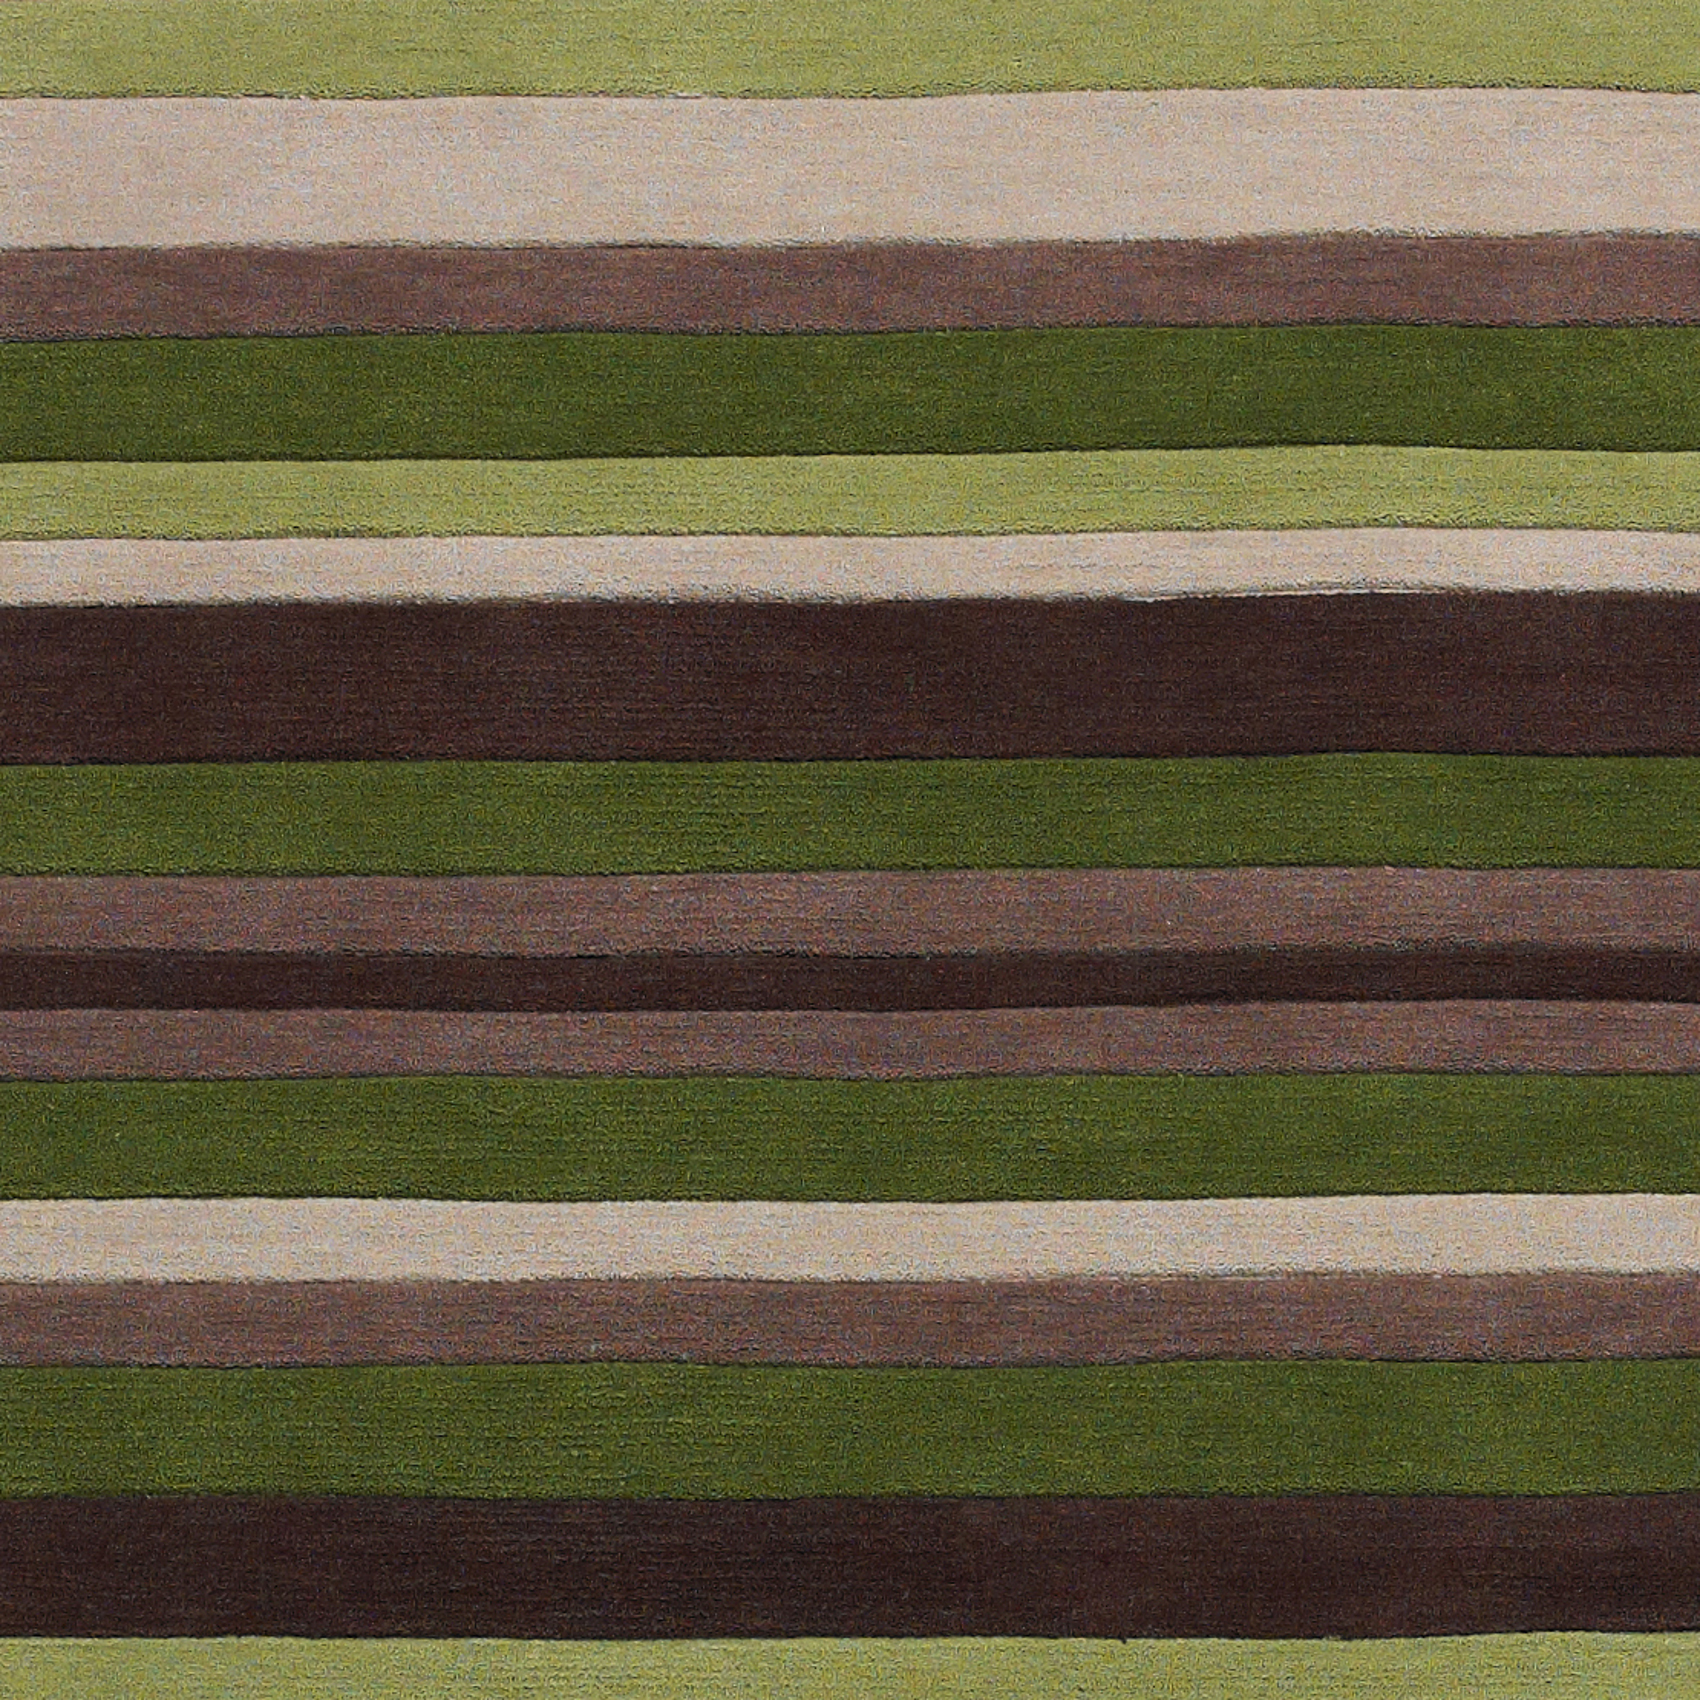 Green Striped 100% Acrylic Rug Large Hand Tufted Hong Kong